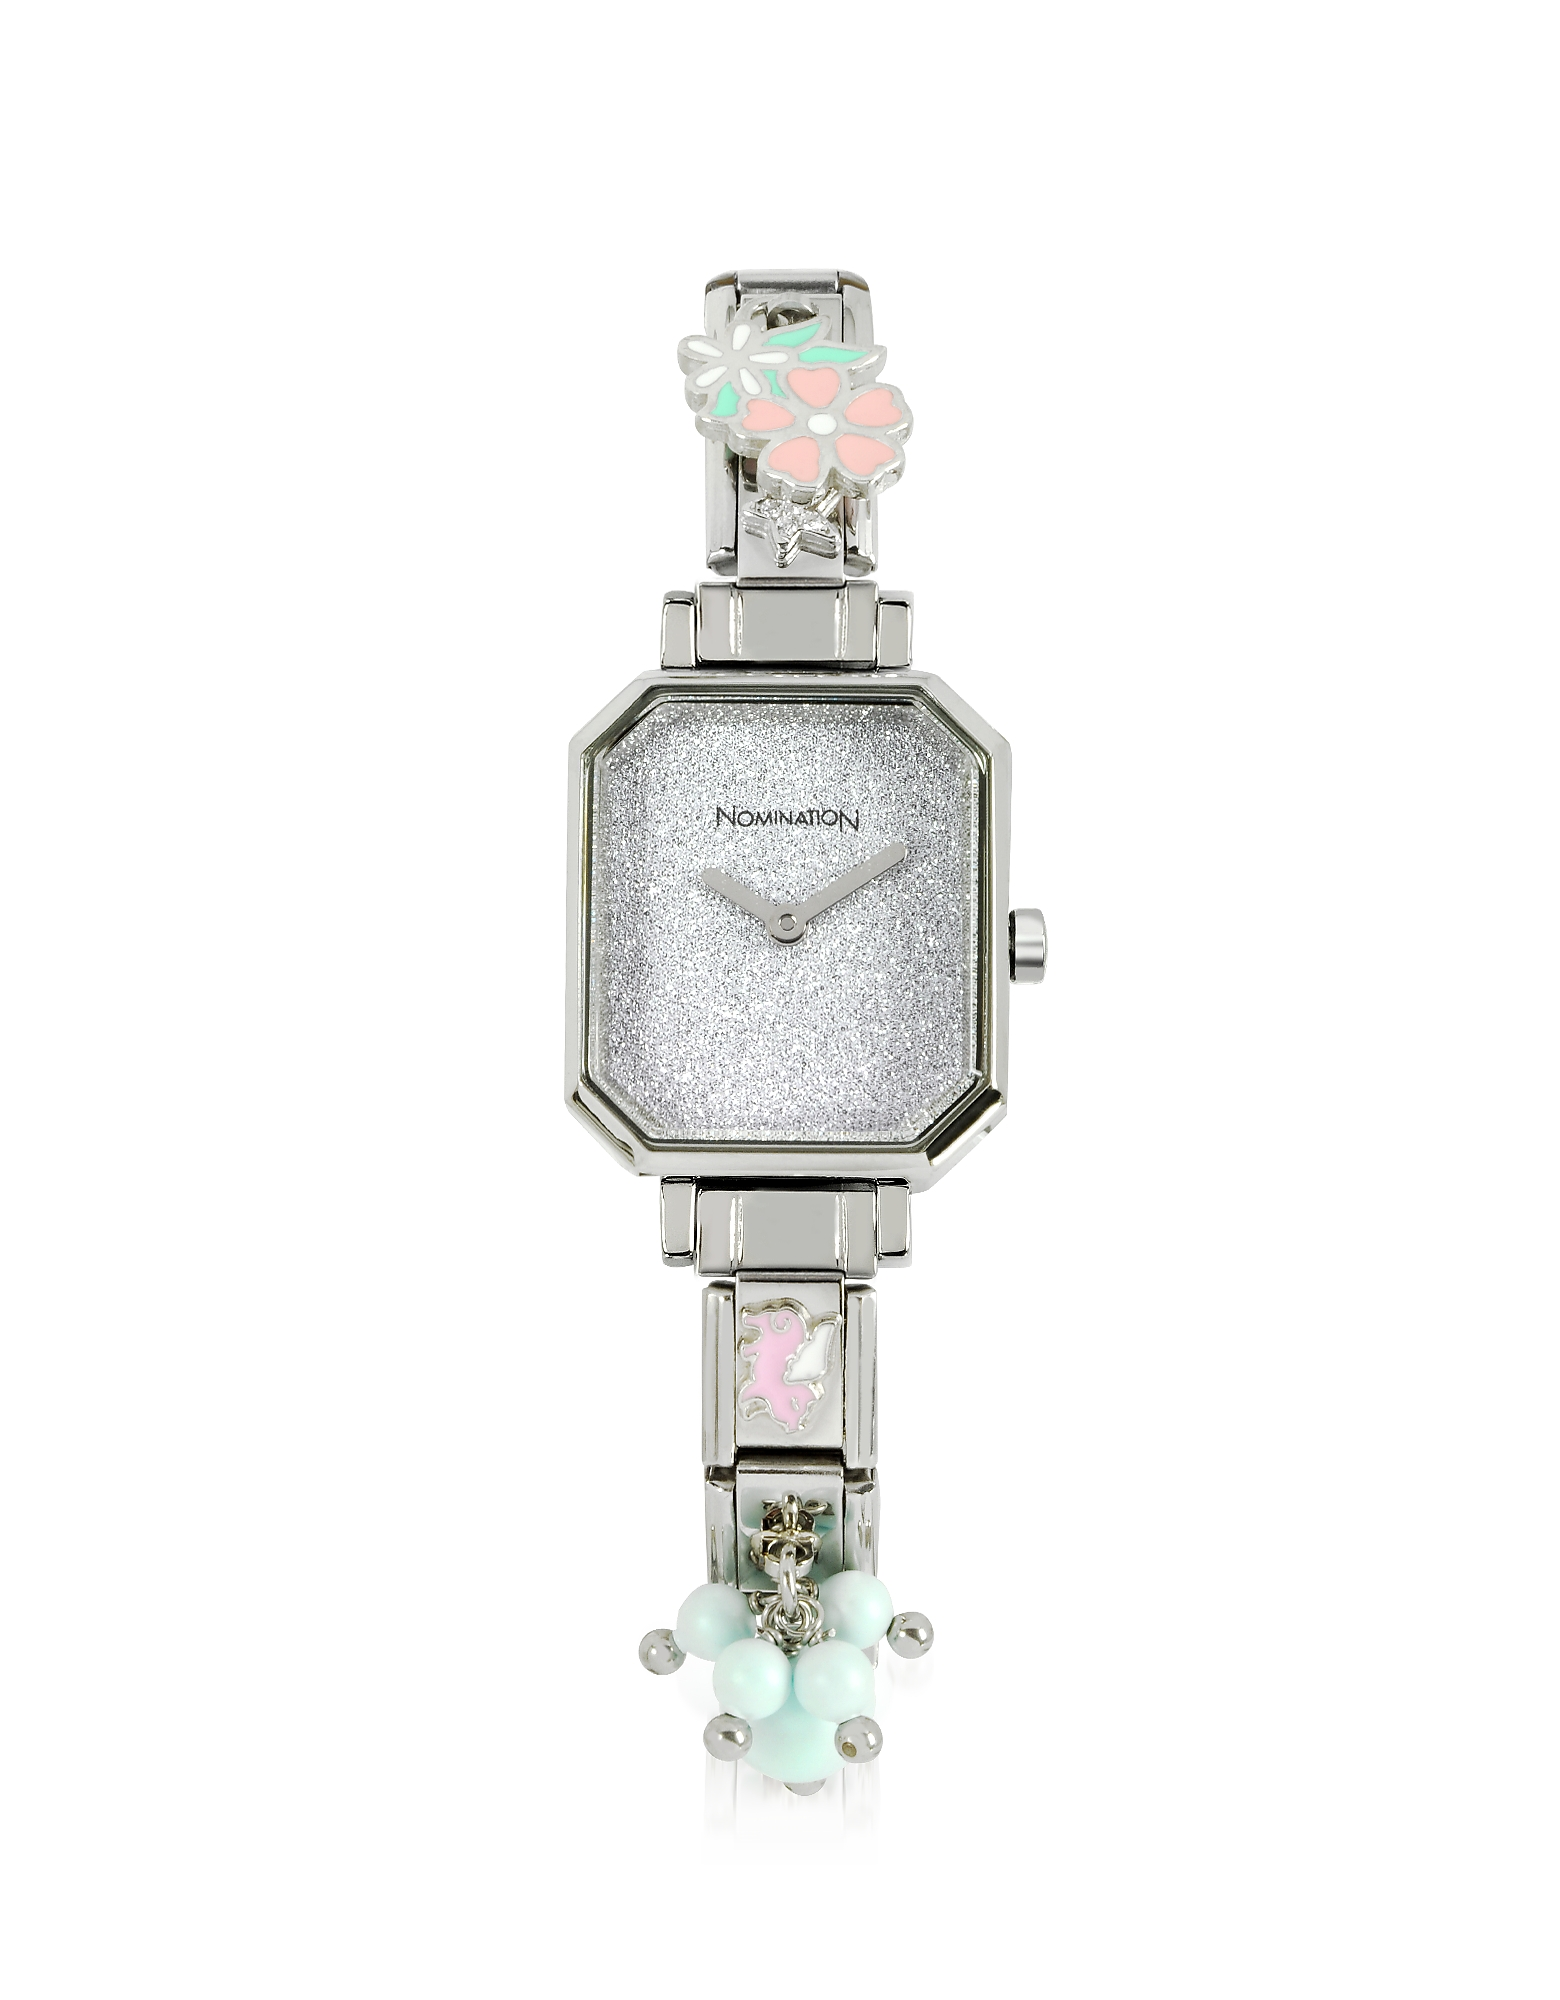 Silver Plated Stainless Steel Composable Women's Watch w/Crystals